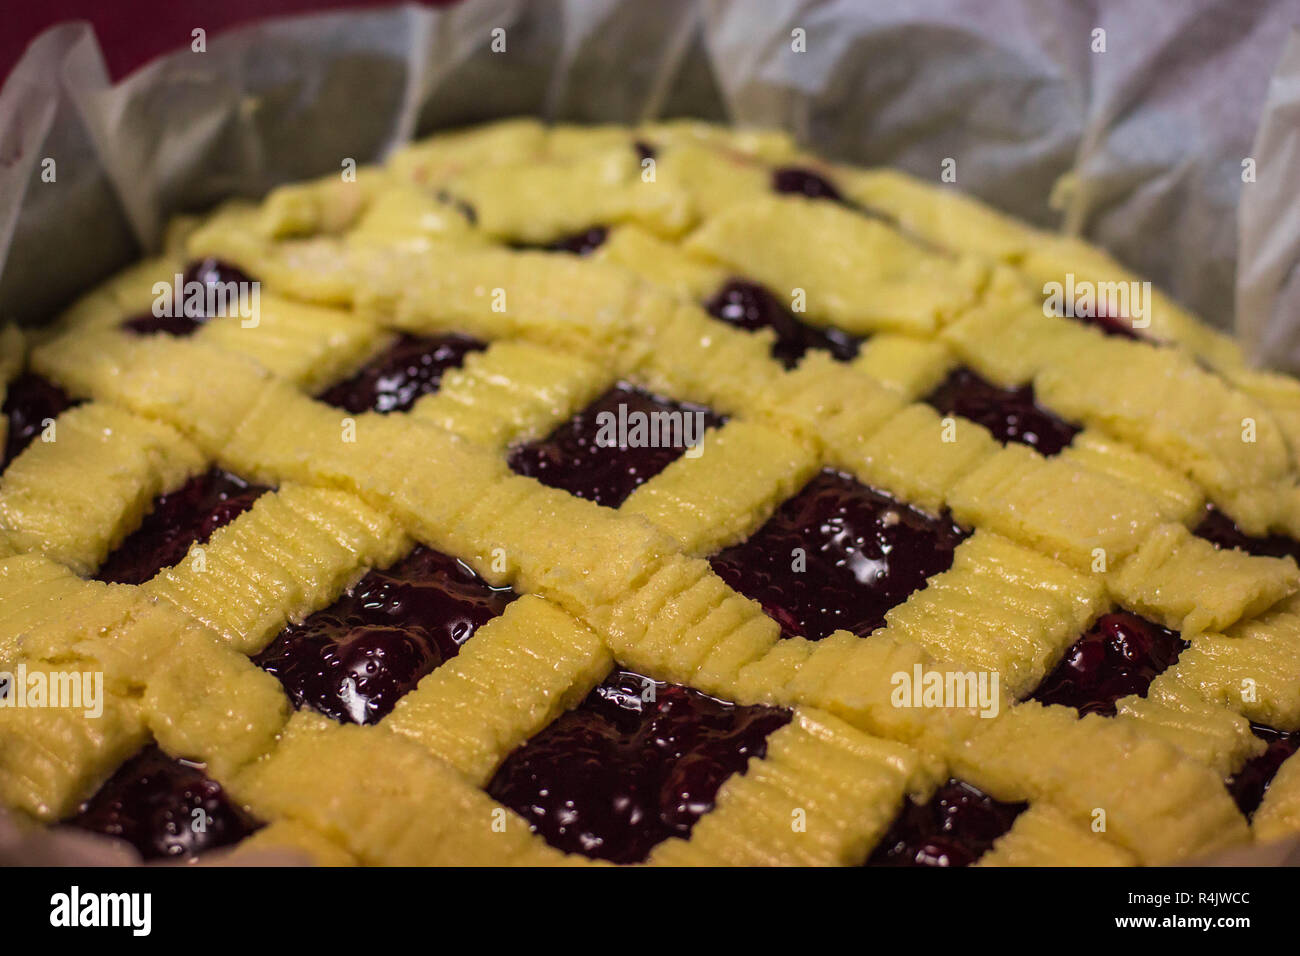 Unbaked homemade american pie with cherry - Stock Image